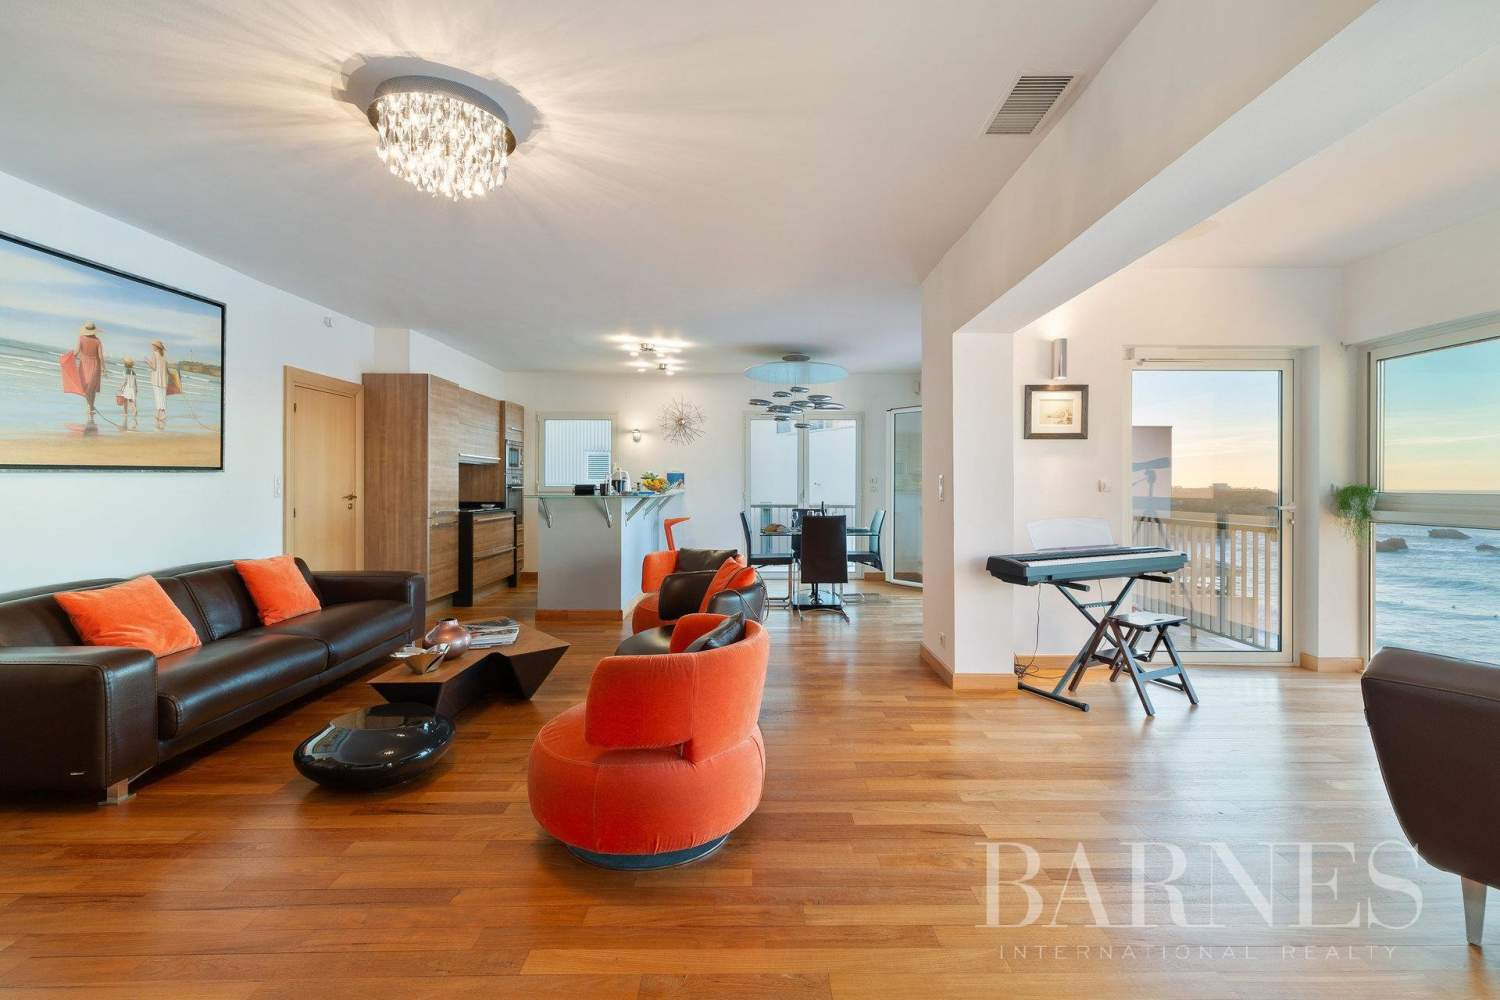 PANORAMA - IN THE HEART OF BIARRITZ RENOVATED APARTMENT WITH SEAVIEW FOR 4 PEOPLE picture 4